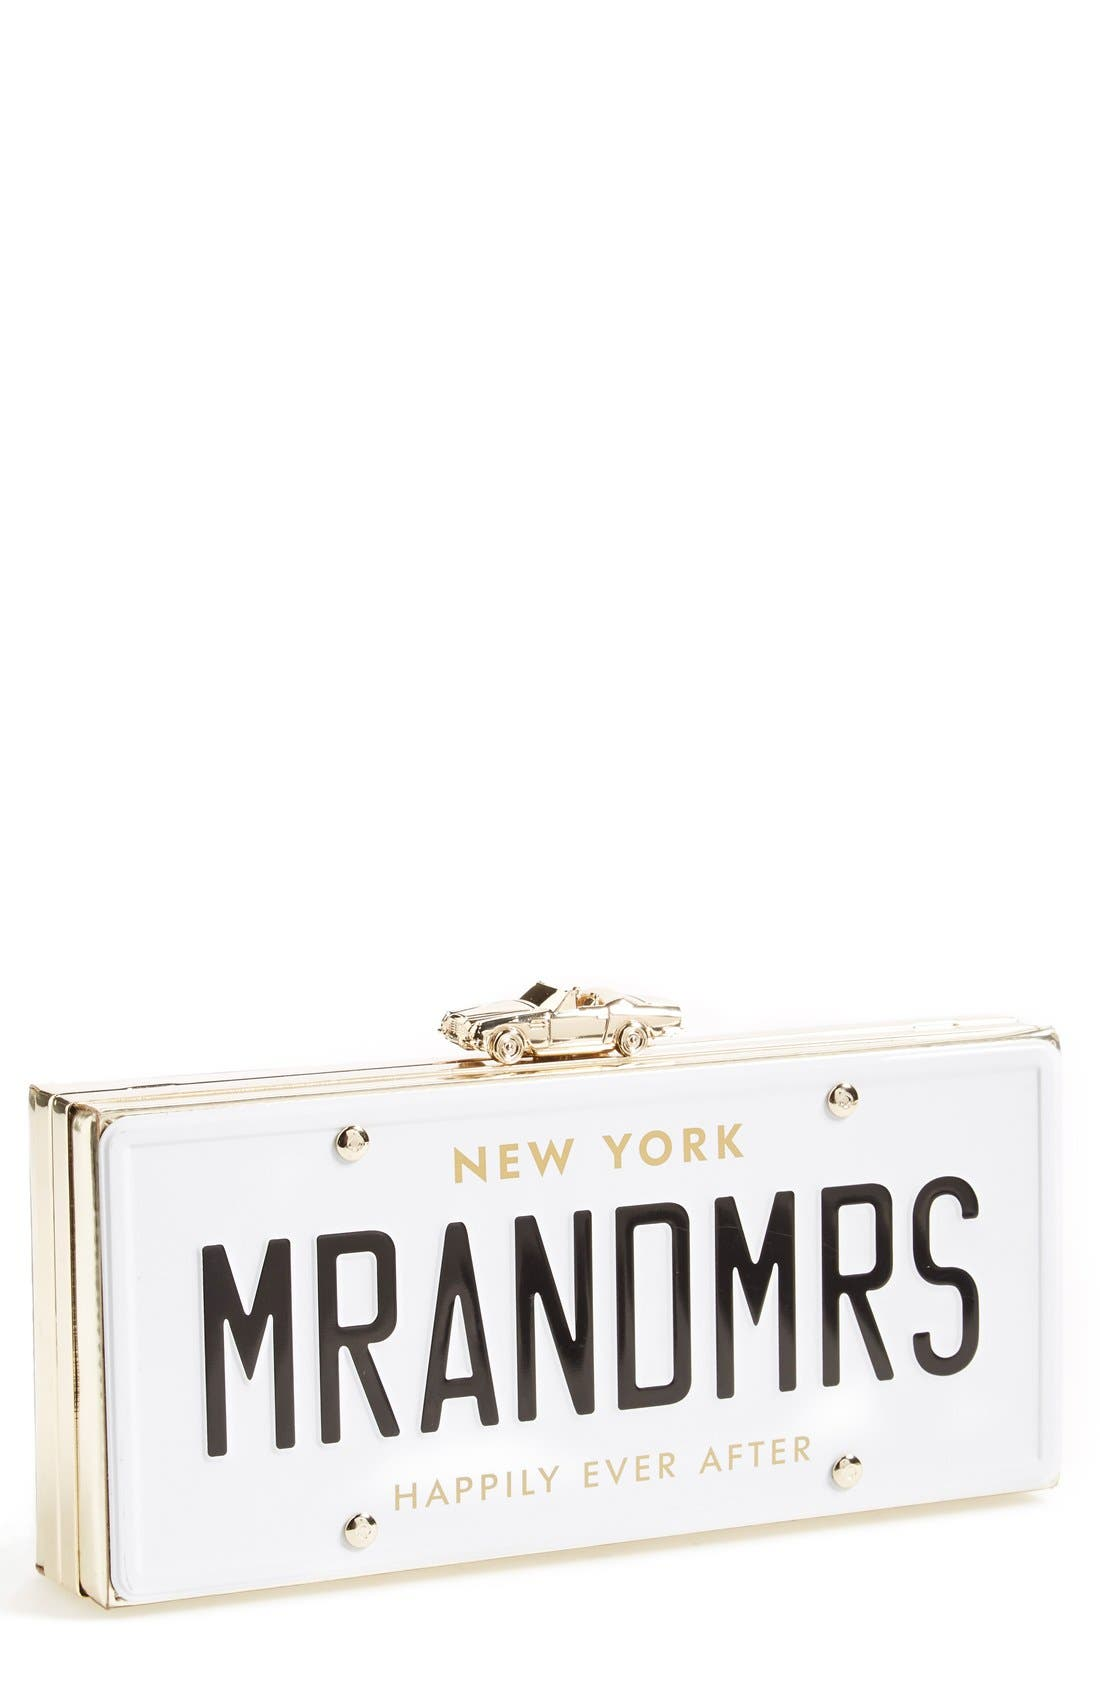 'mr. and mrs. - happily ever after' license plate box clutch,                         Main,                         color,